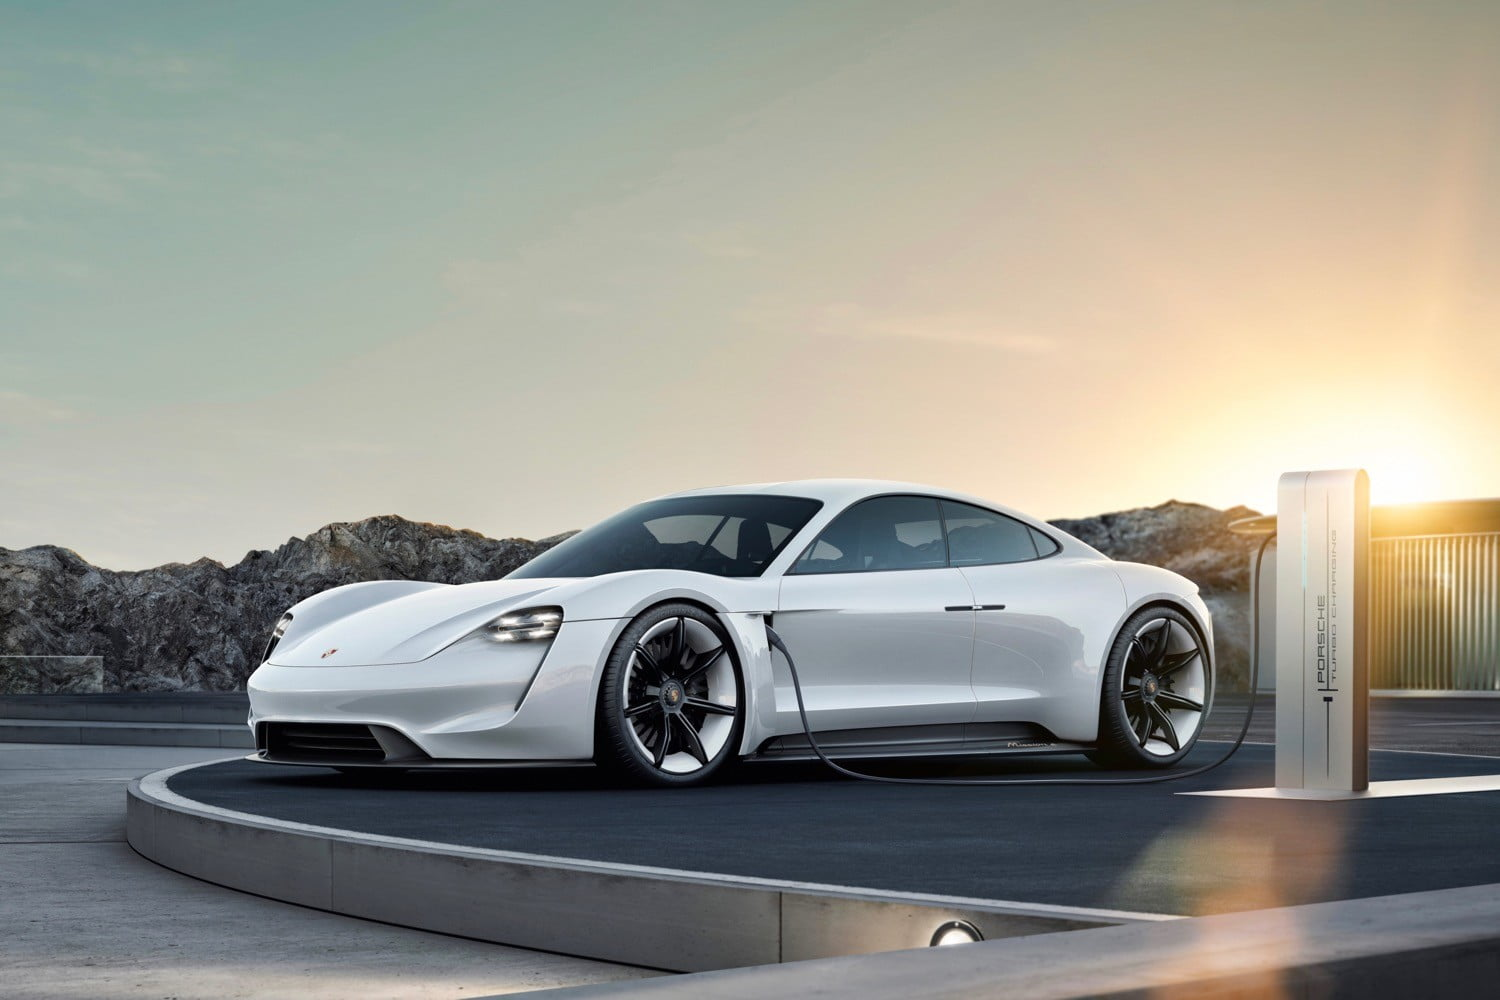 Porsche Taycan Specifications, Review and Price